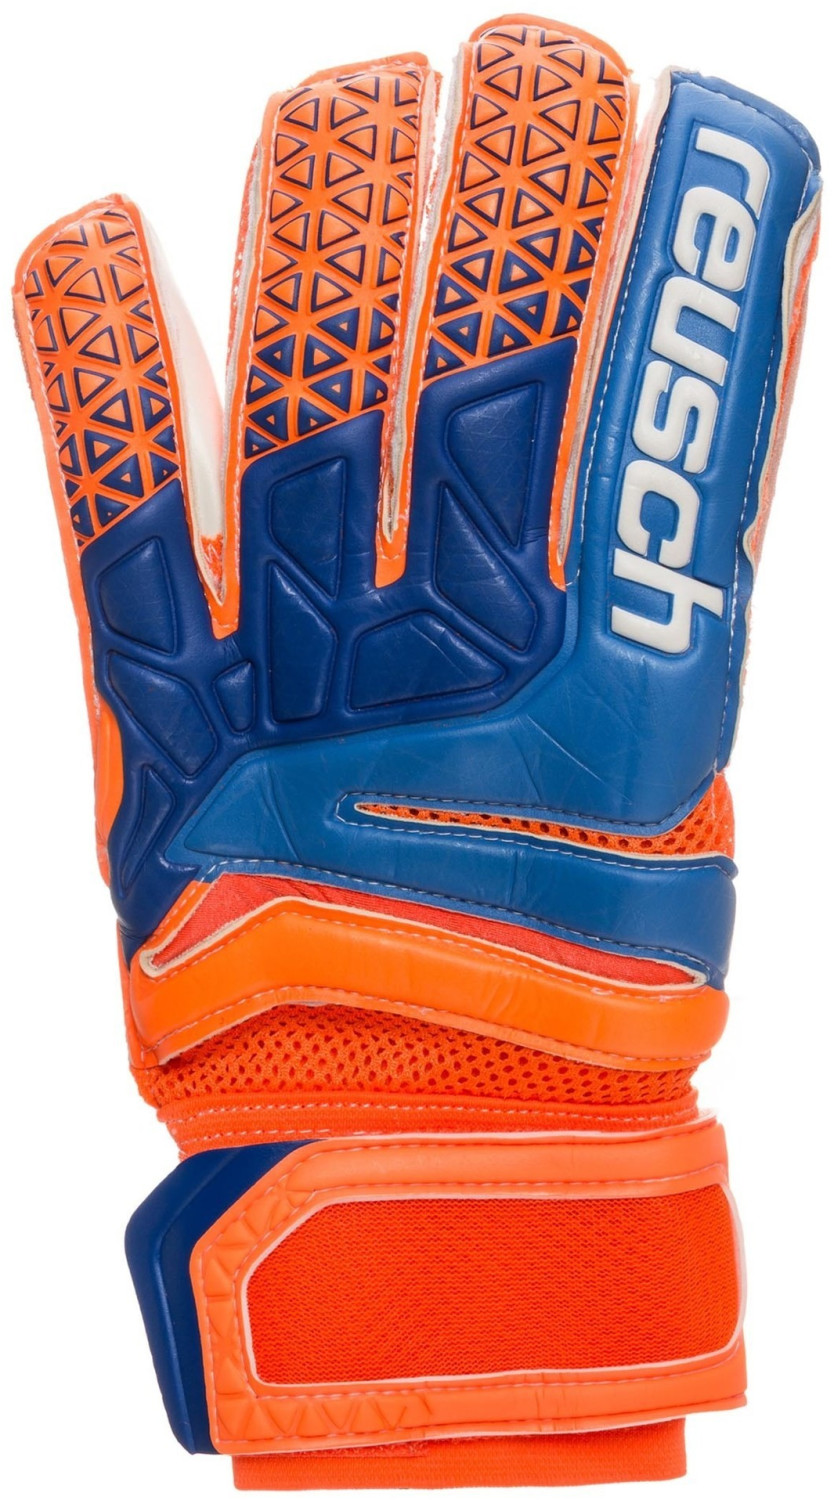 Reusch Prisma Prime G3 (3870930) Orange/Blue/Orange